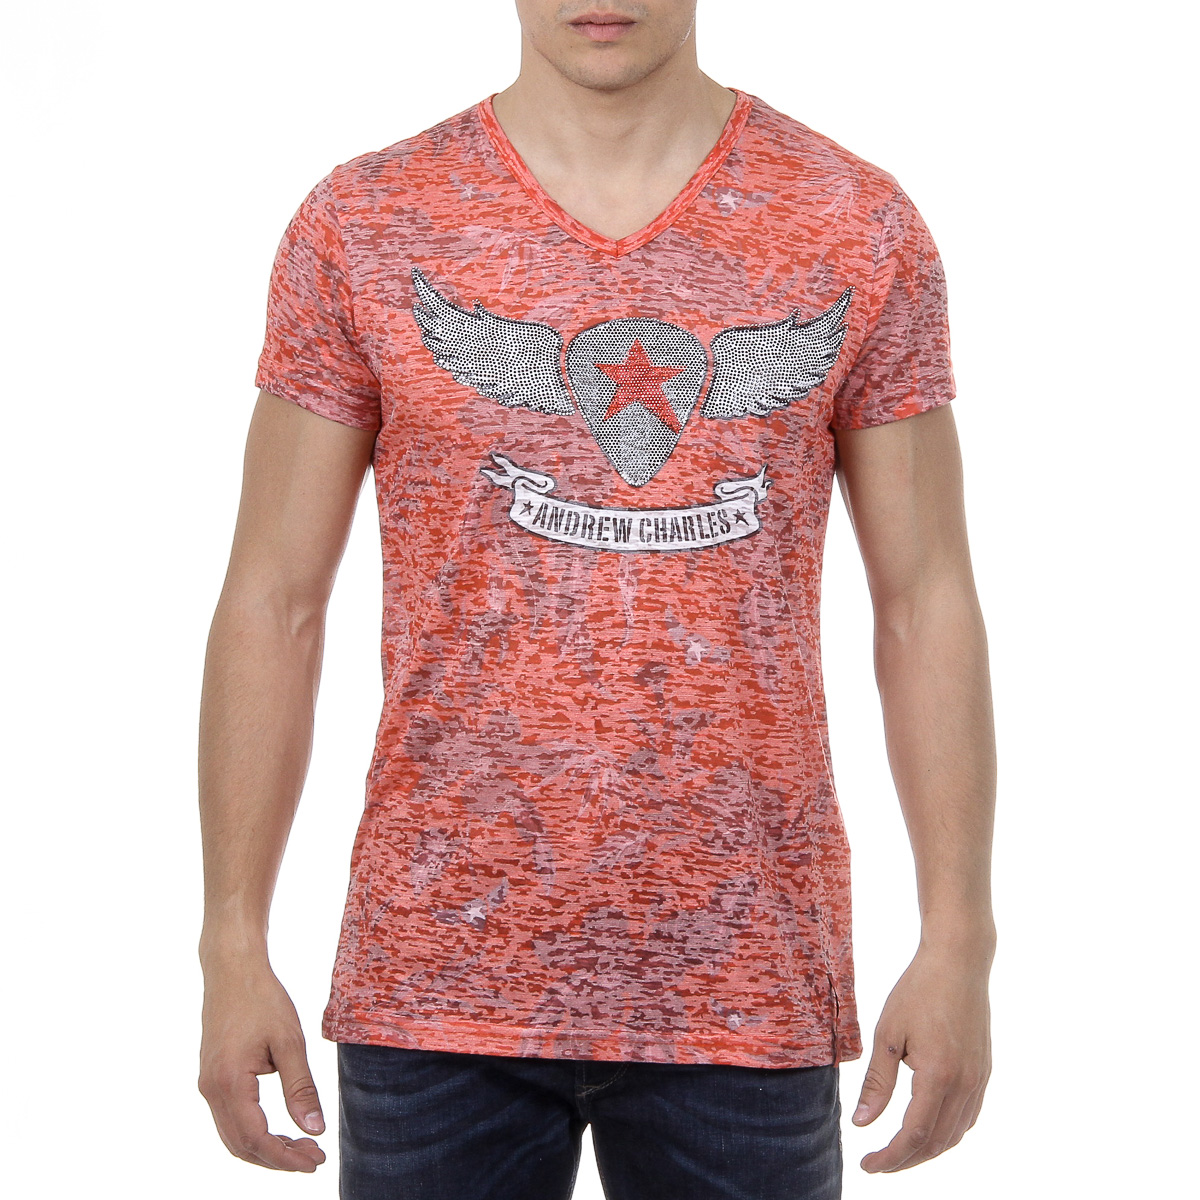 Primary image for Andrew Charles Mens T-Shirt Short Sleeves V-Neck Red ISAAC